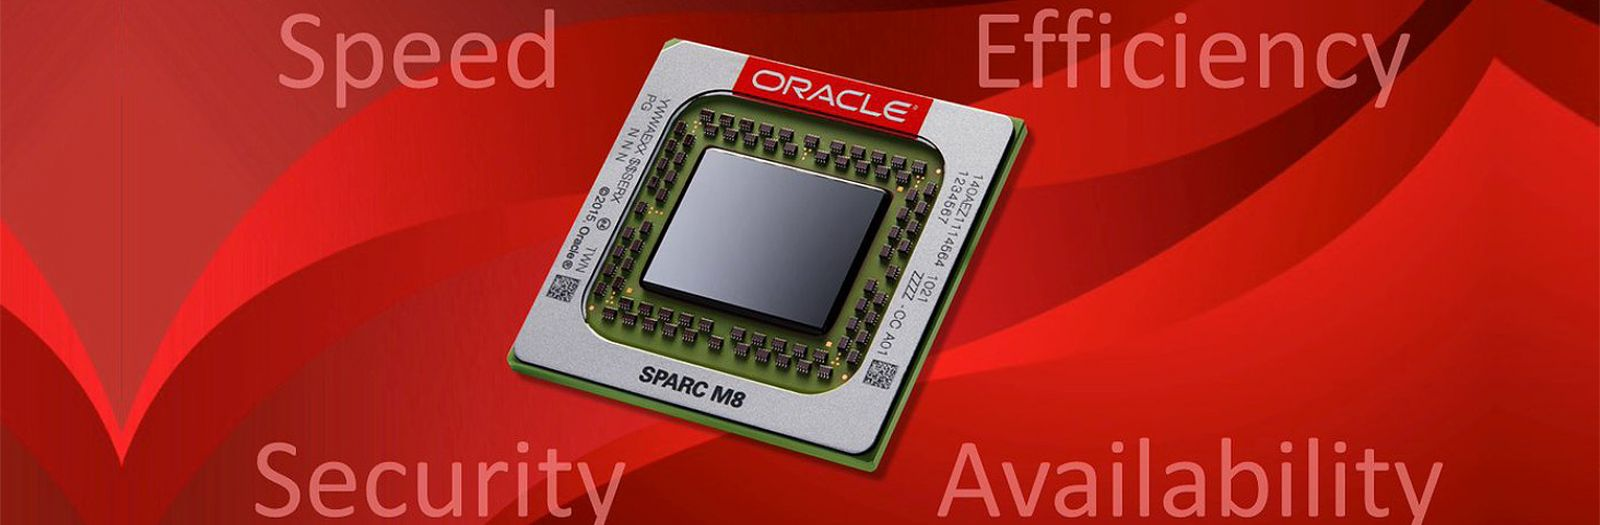 Oracle Sparc banner